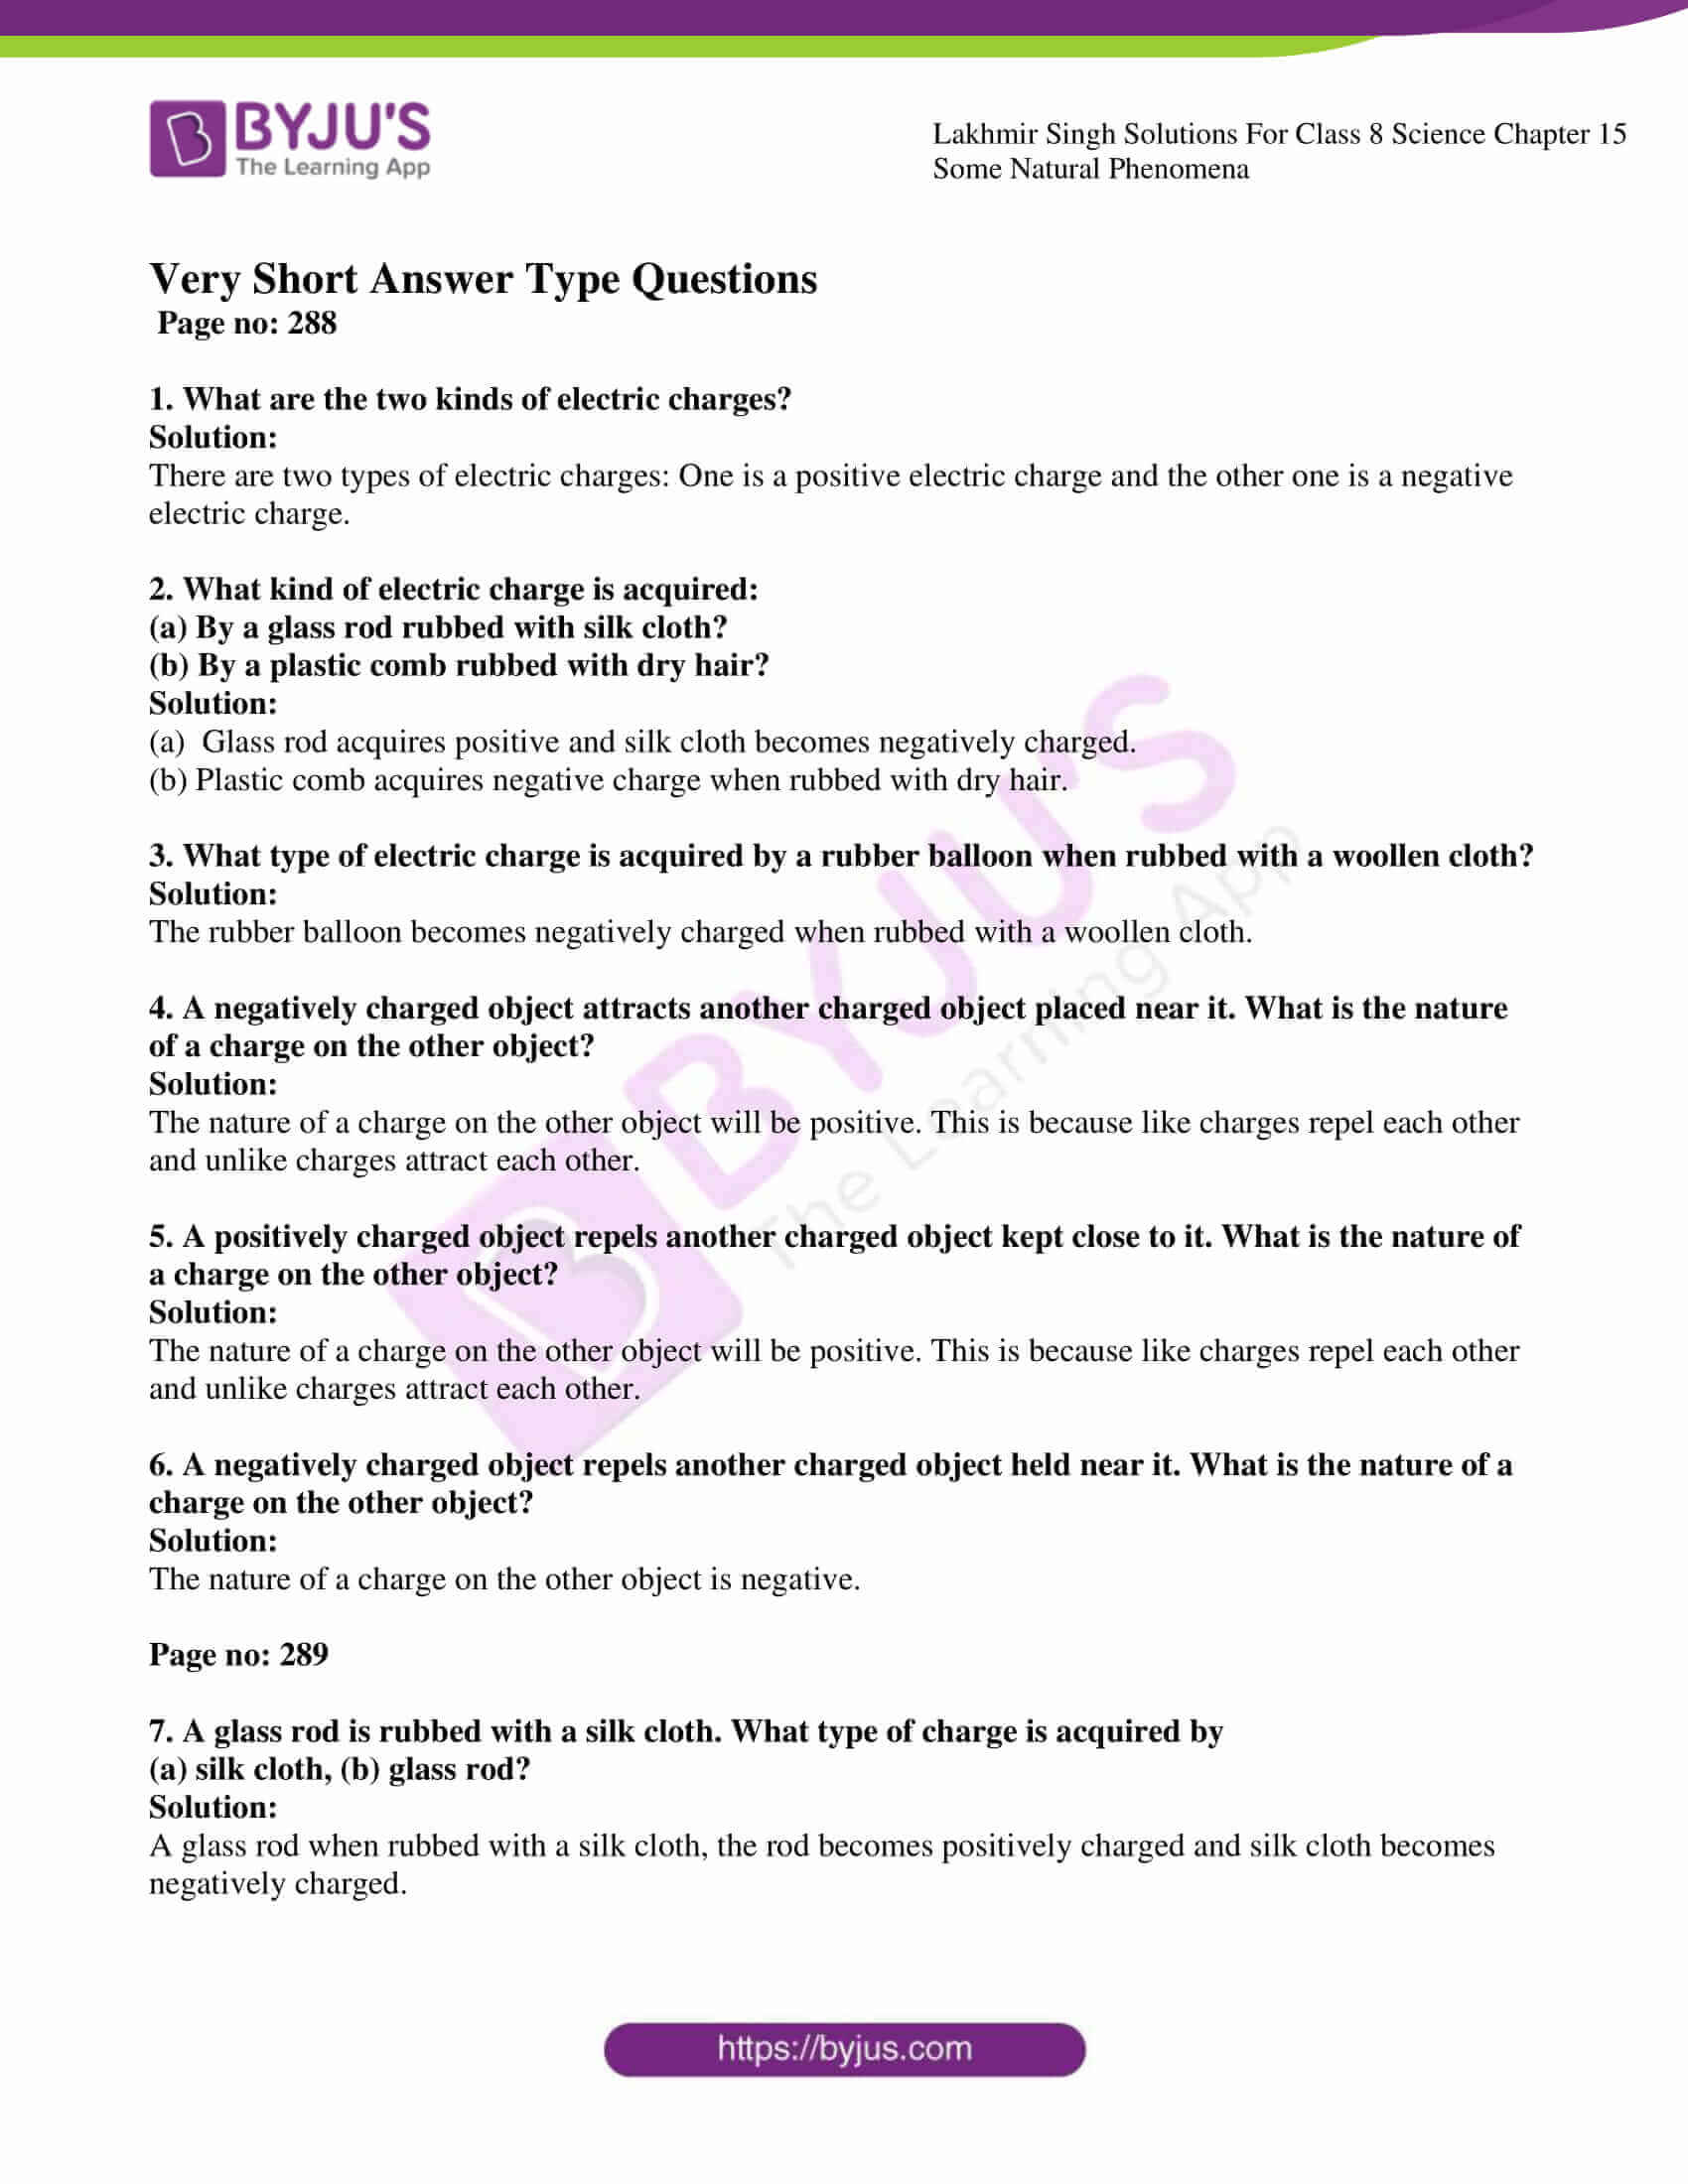 lakhmir singh solutions for class 8 science chapter 15 01